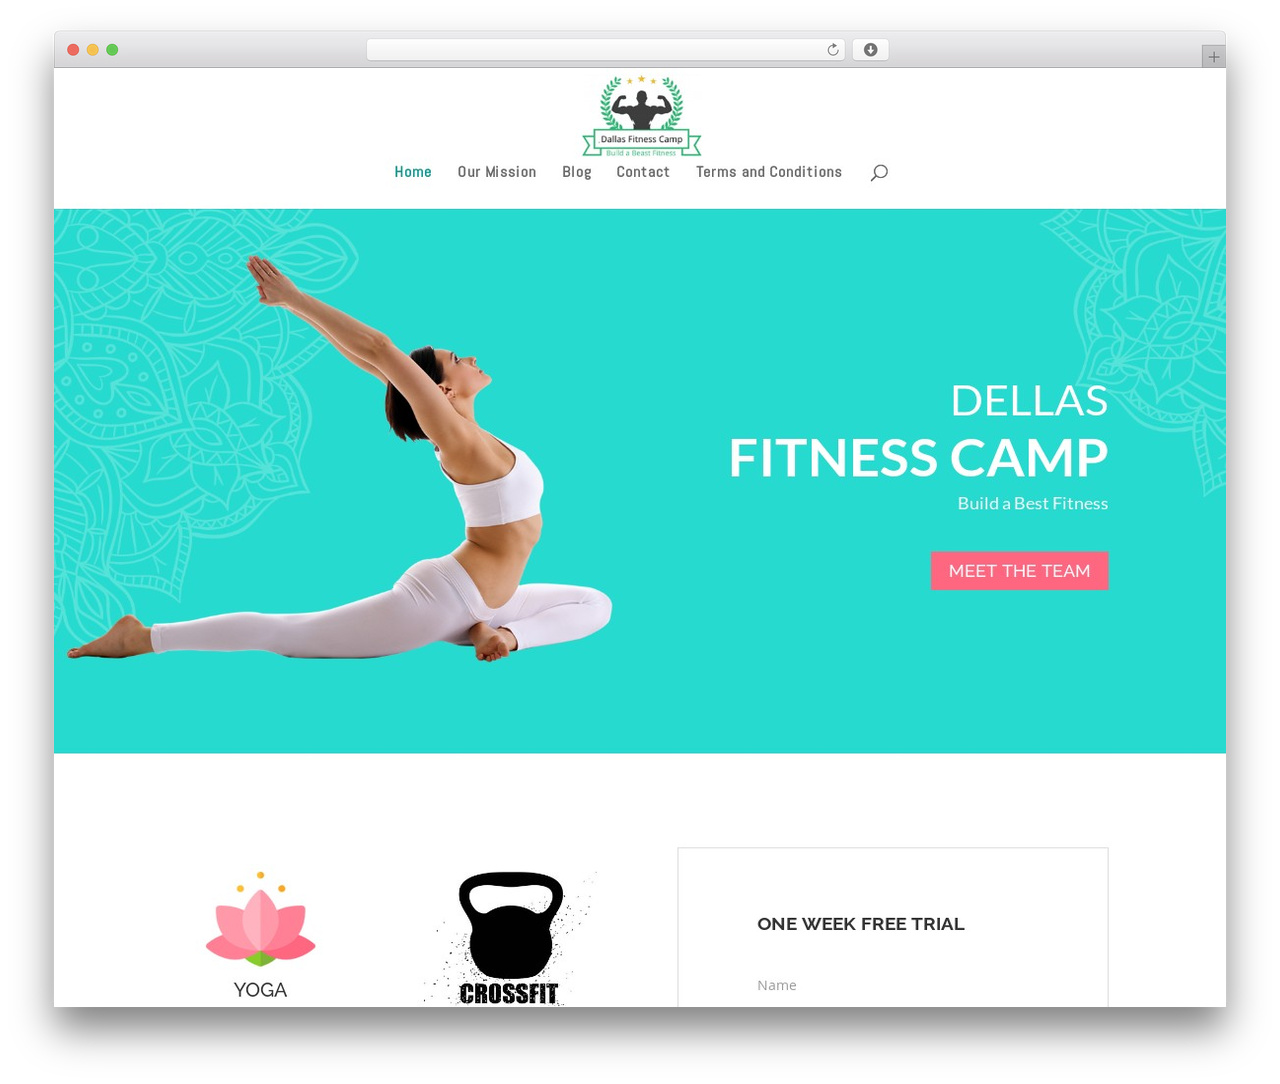 Divi WP template by Elegant Themes - dallasfitnesscamp.com